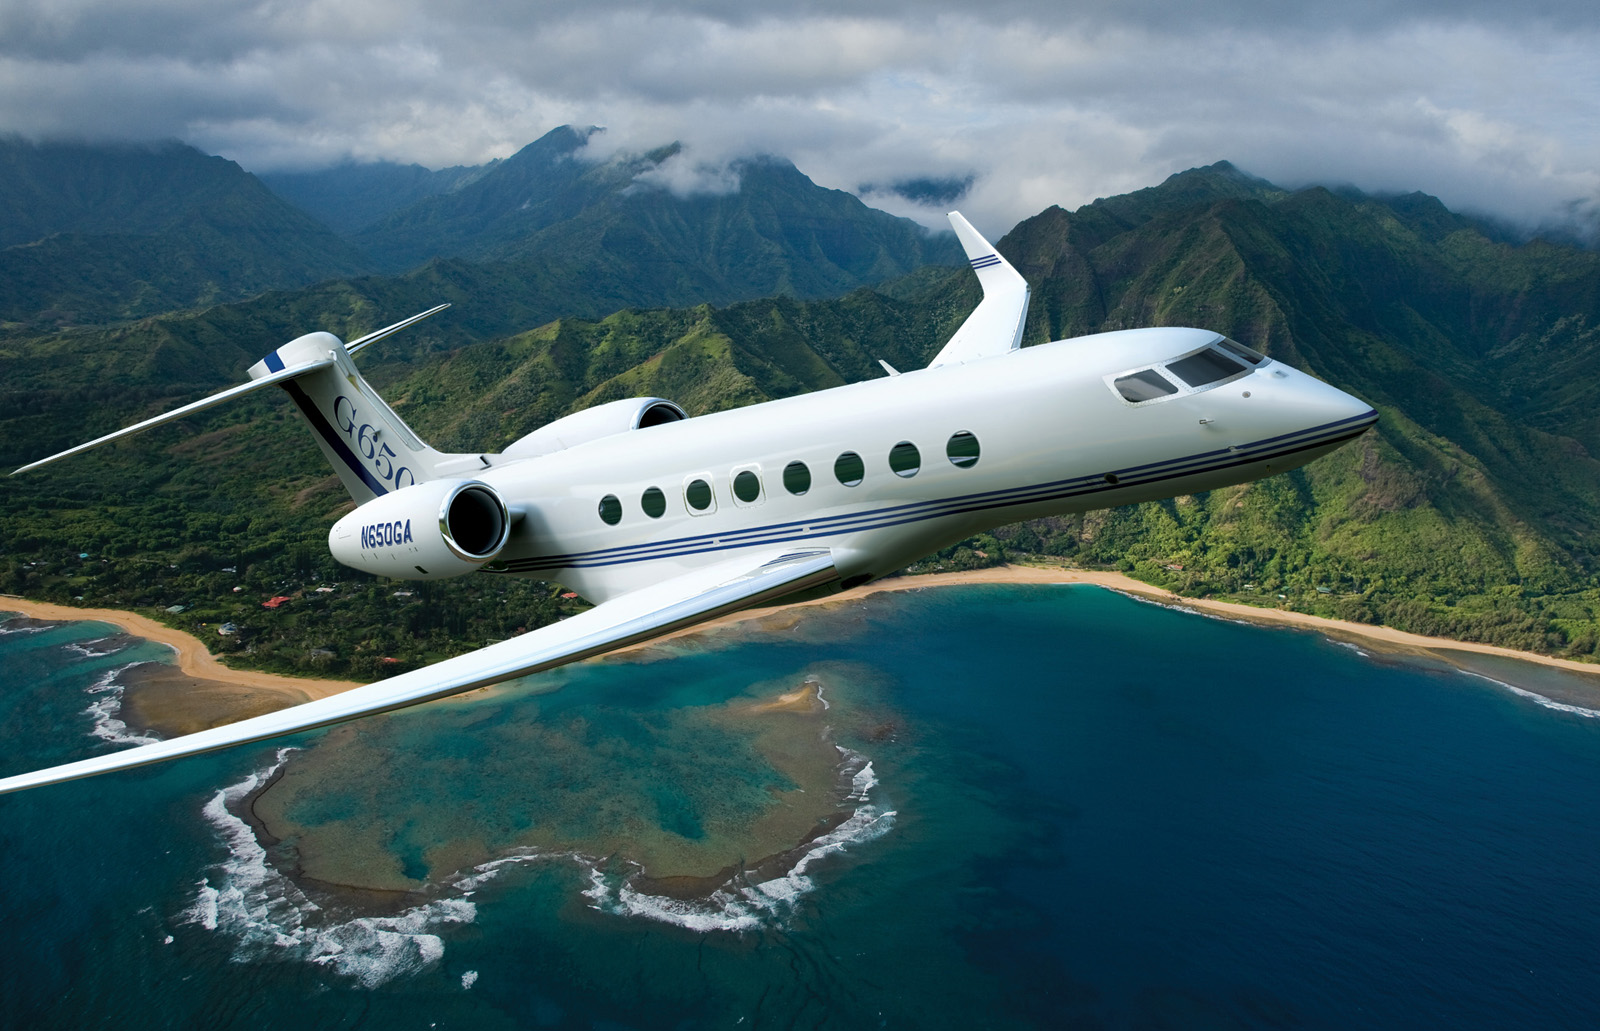 gulfstream aerospace is producing the g650 the companys new clean sheet business aircraft